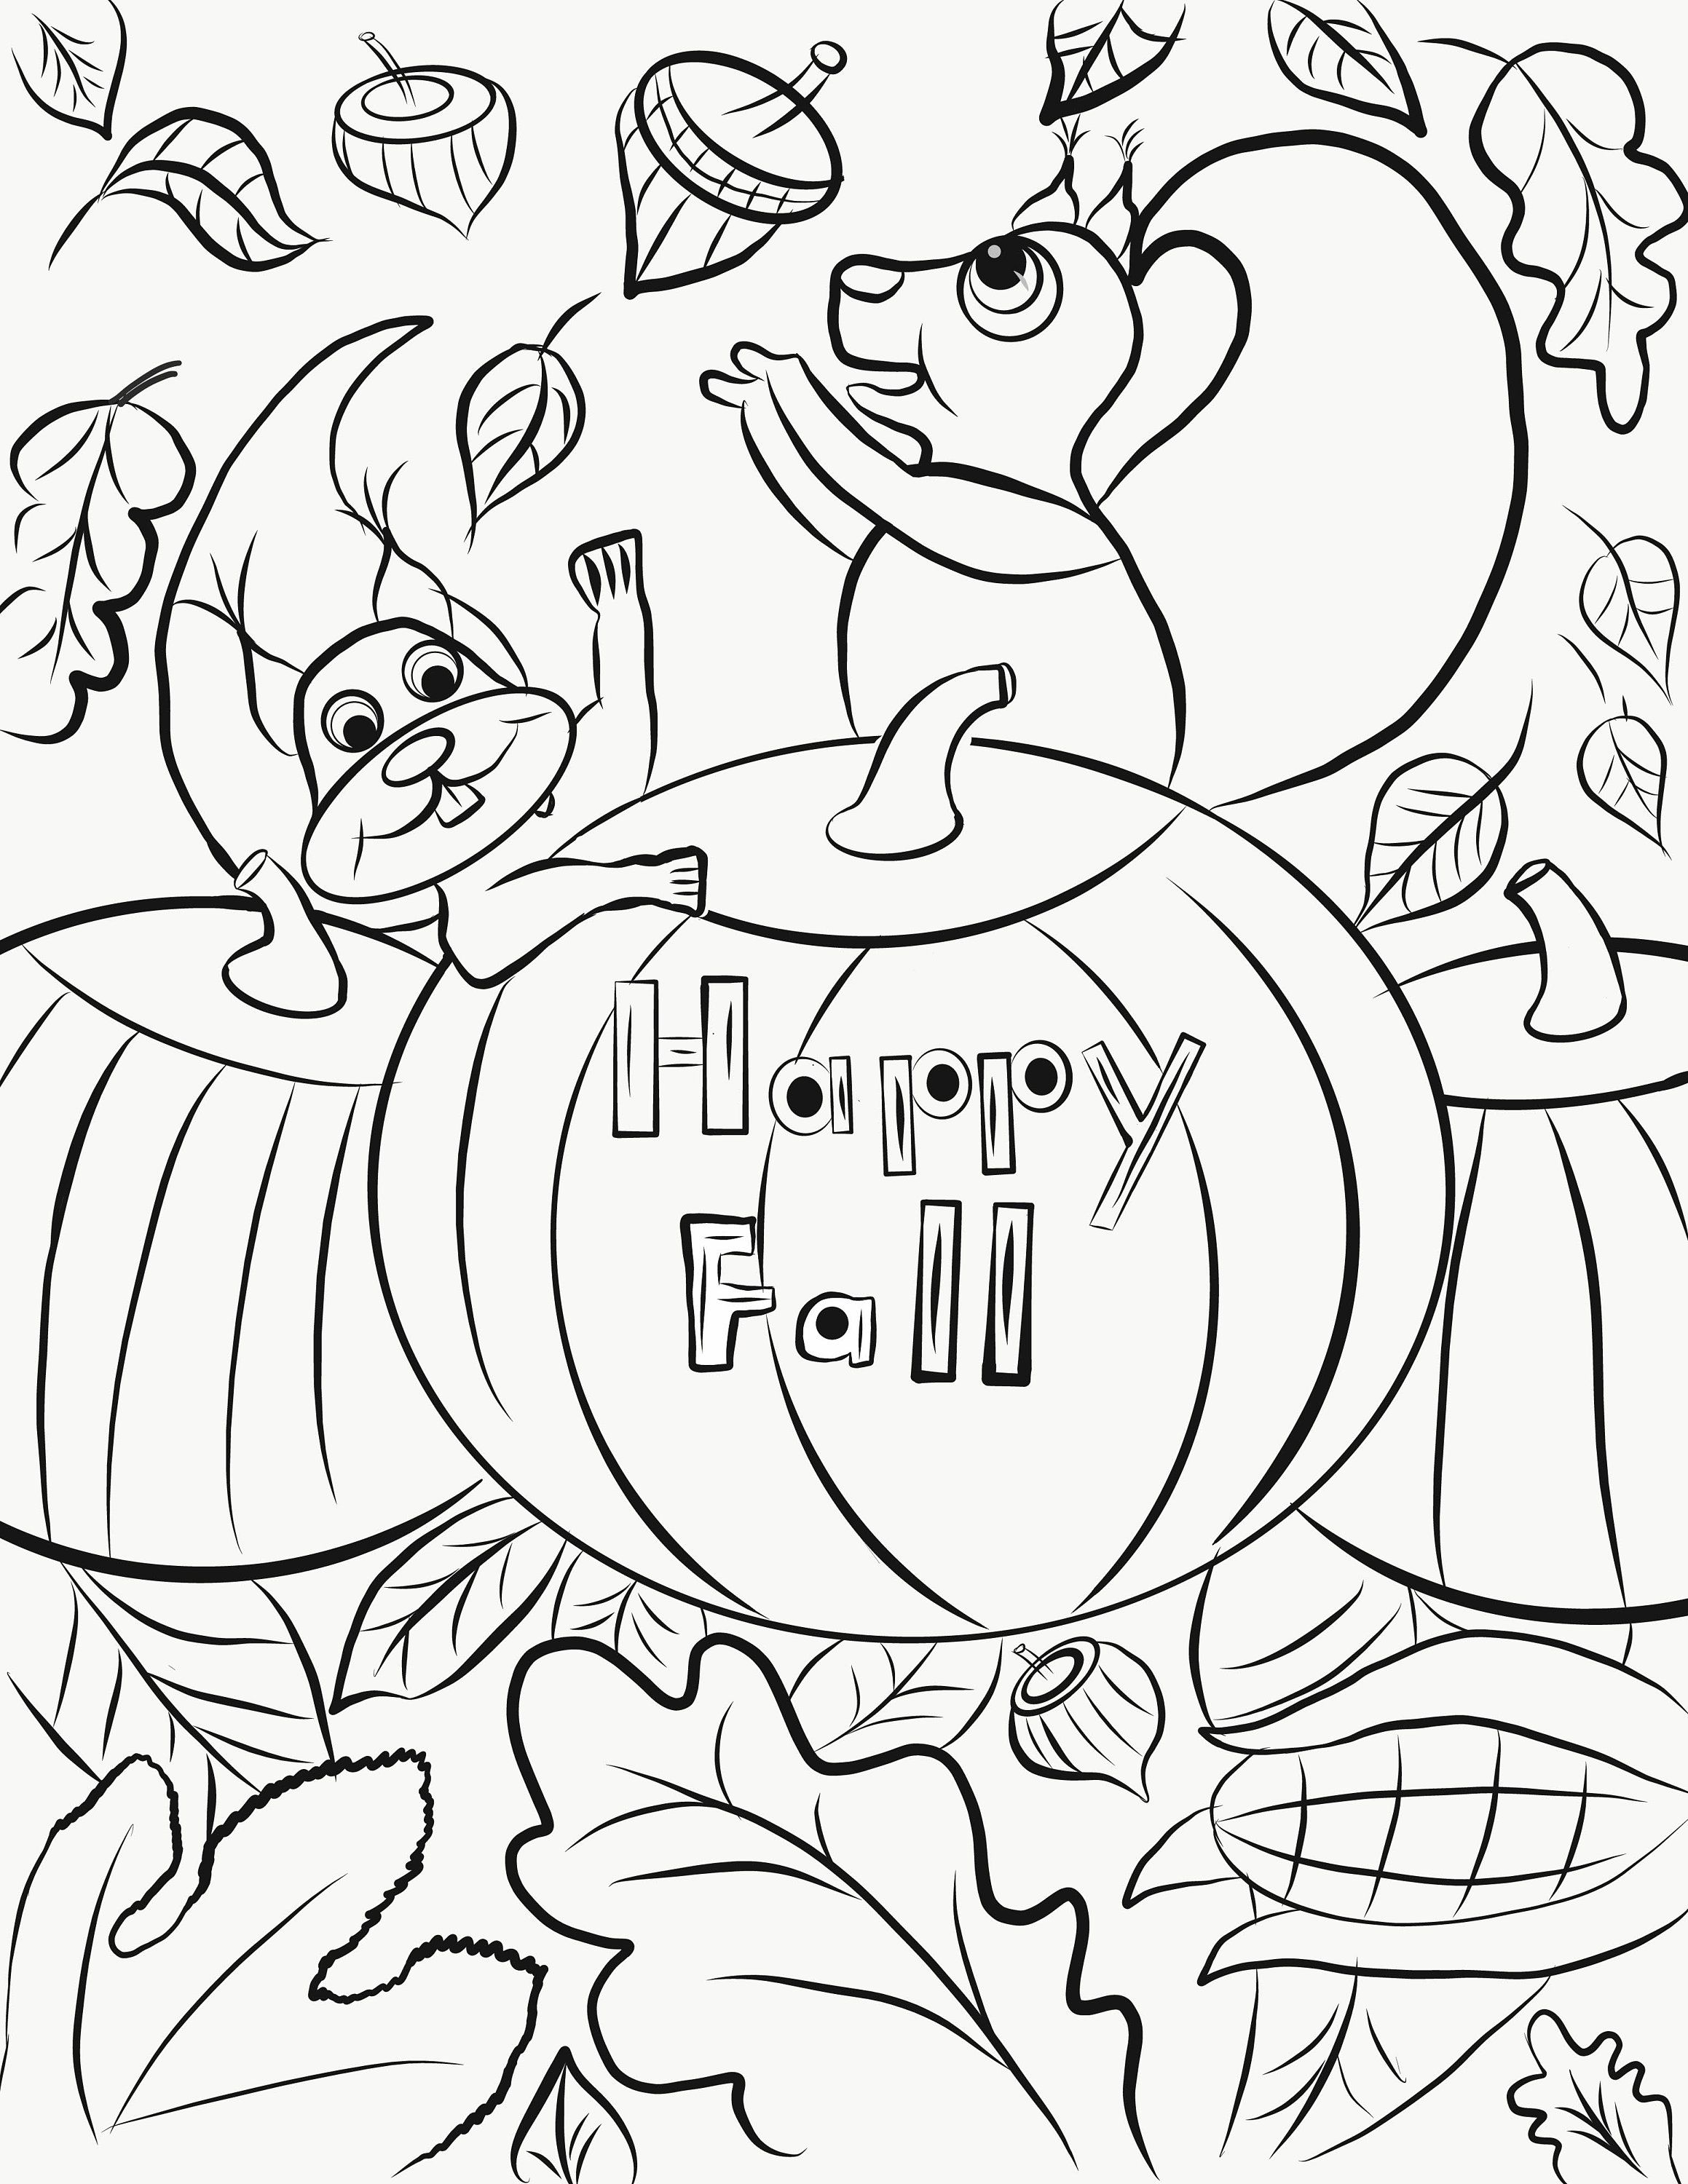 Happy Fall Coloring Page Printable Artwork Pdf And Jpg Any Age Fall Coloring Pages Free Thanksgiving Coloring Pages Fall Coloring Sheets [ 3000 x 2318 Pixel ]